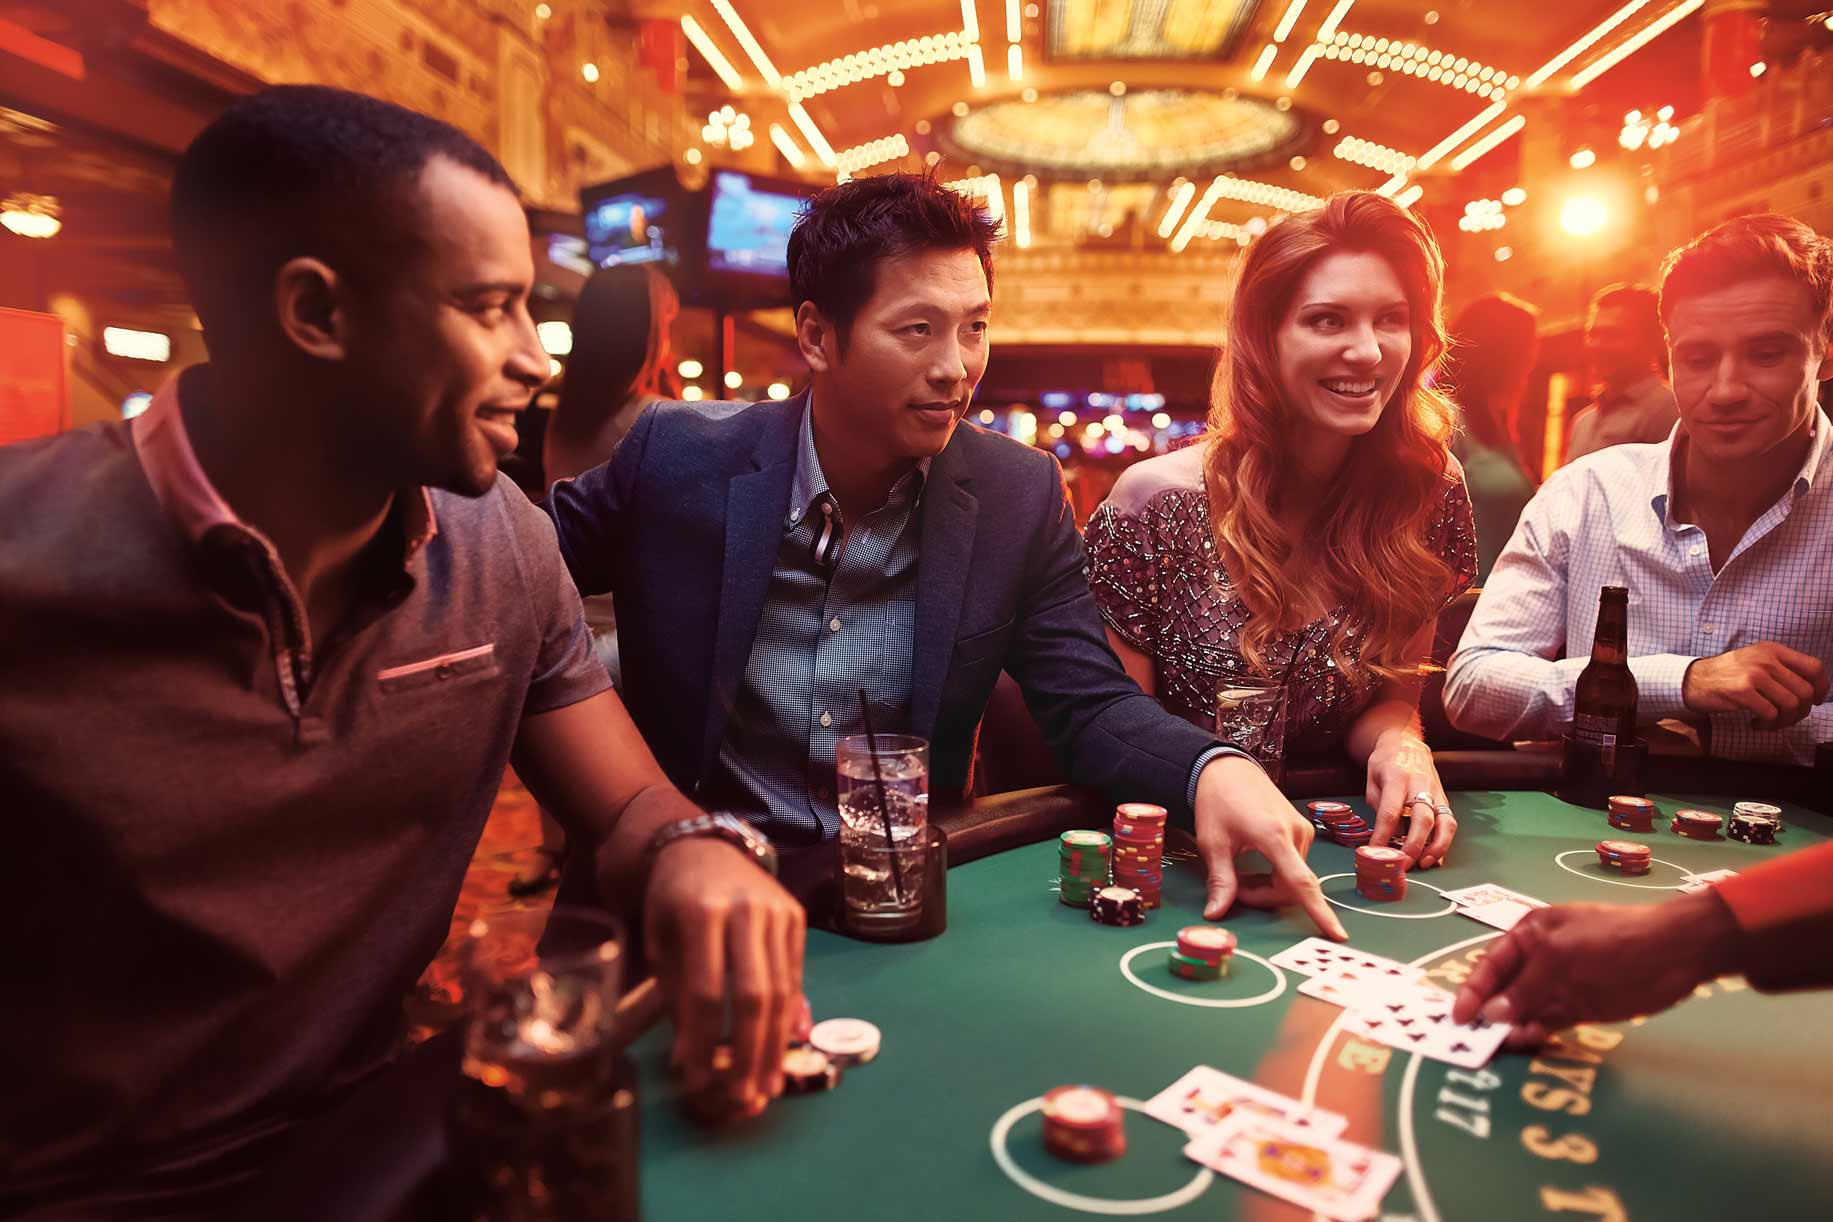 Get The Best Use of Online Casino Promotions